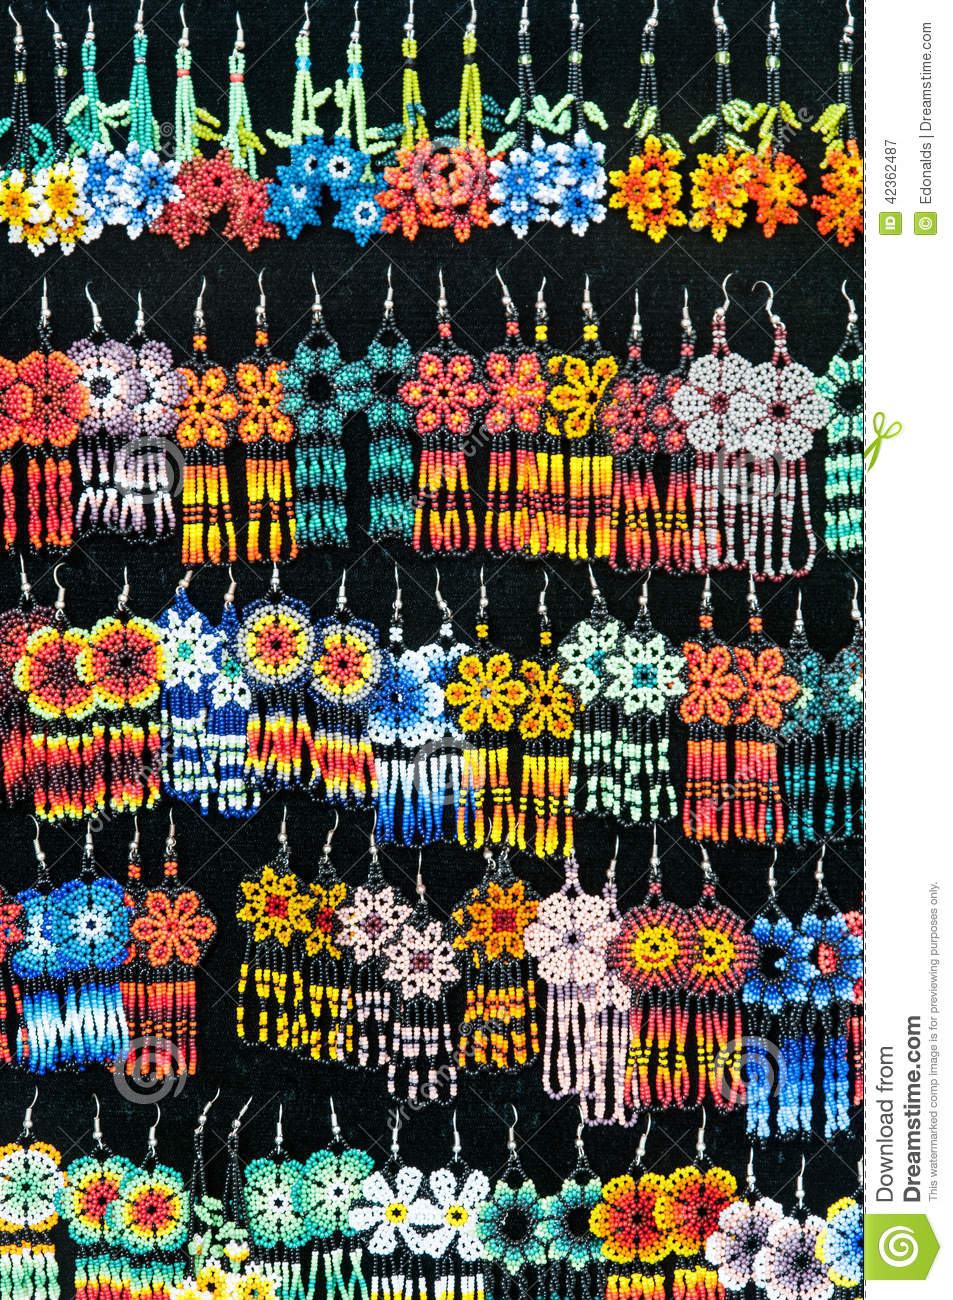 Beaded Earrings Stock Photo - Image: 42362487 Black And Silver Background